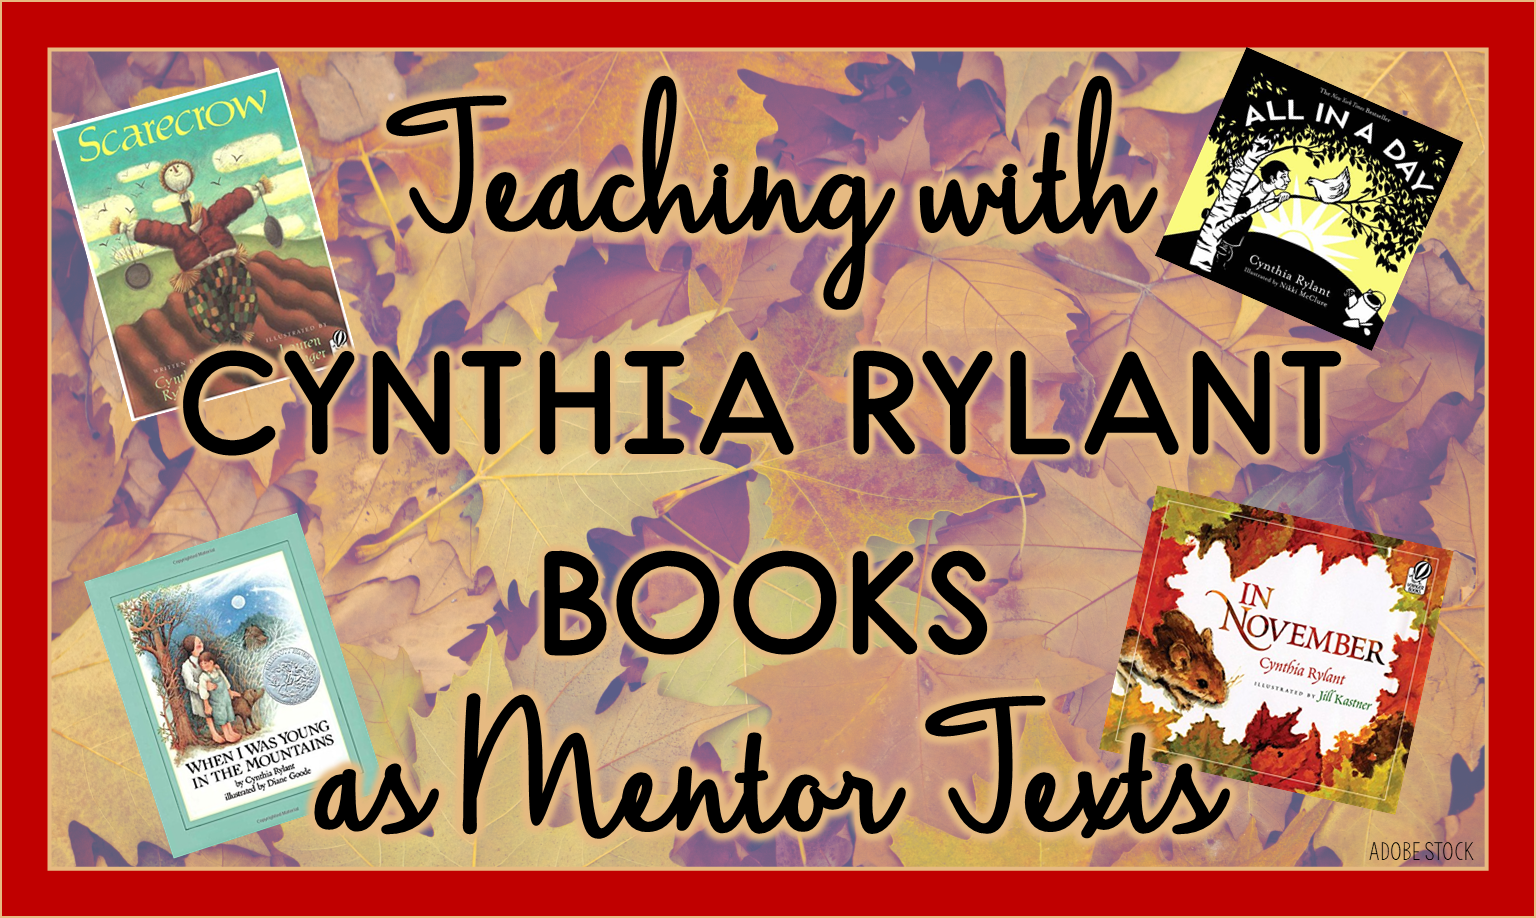 Cynthia Rylant is one of the best descriptive writers. This post includes ten of her best books and how one teacher uses them as mentor texts for reading and writing.